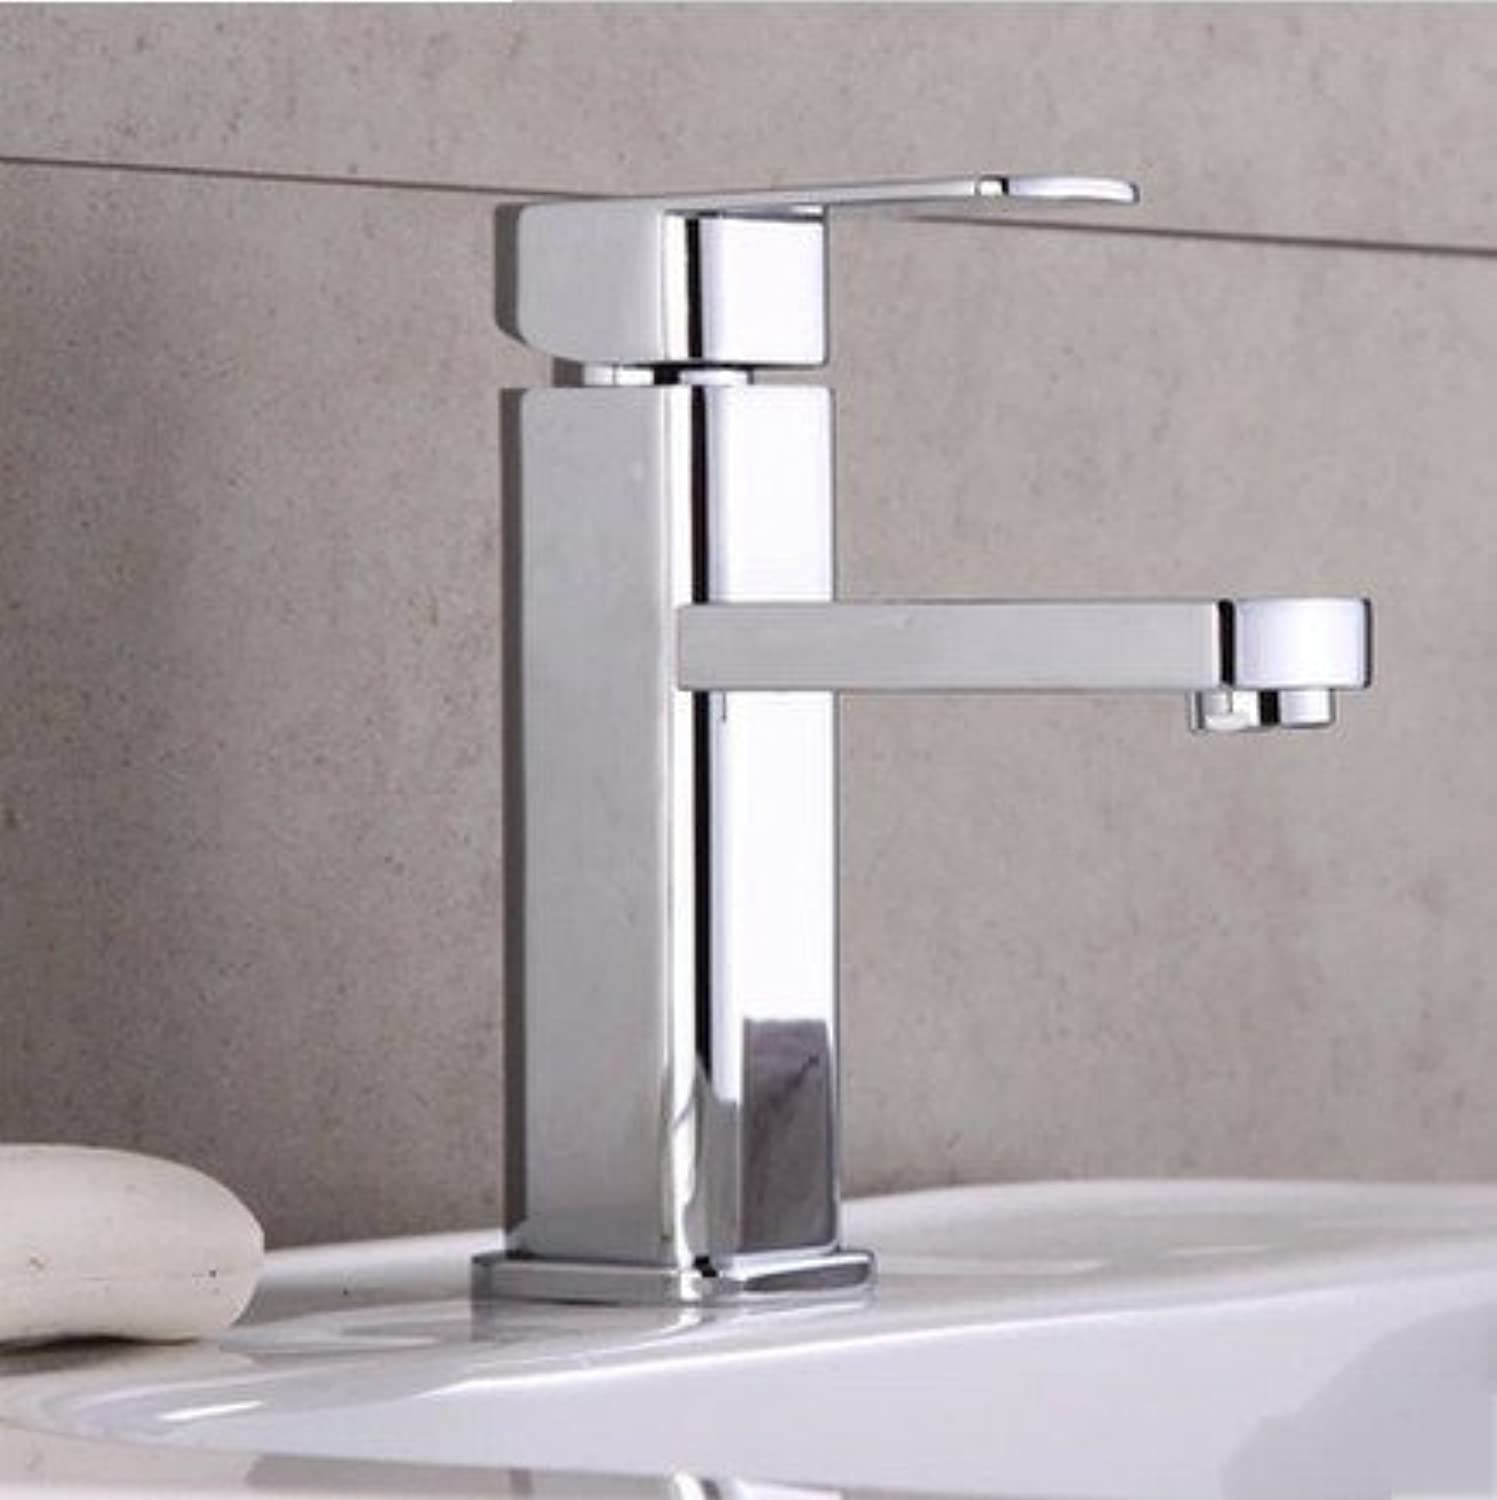 Hlluya Professional Sink Mixer Tap Kitchen Faucet Hot and cold basin mixer redation to high single hole,D,